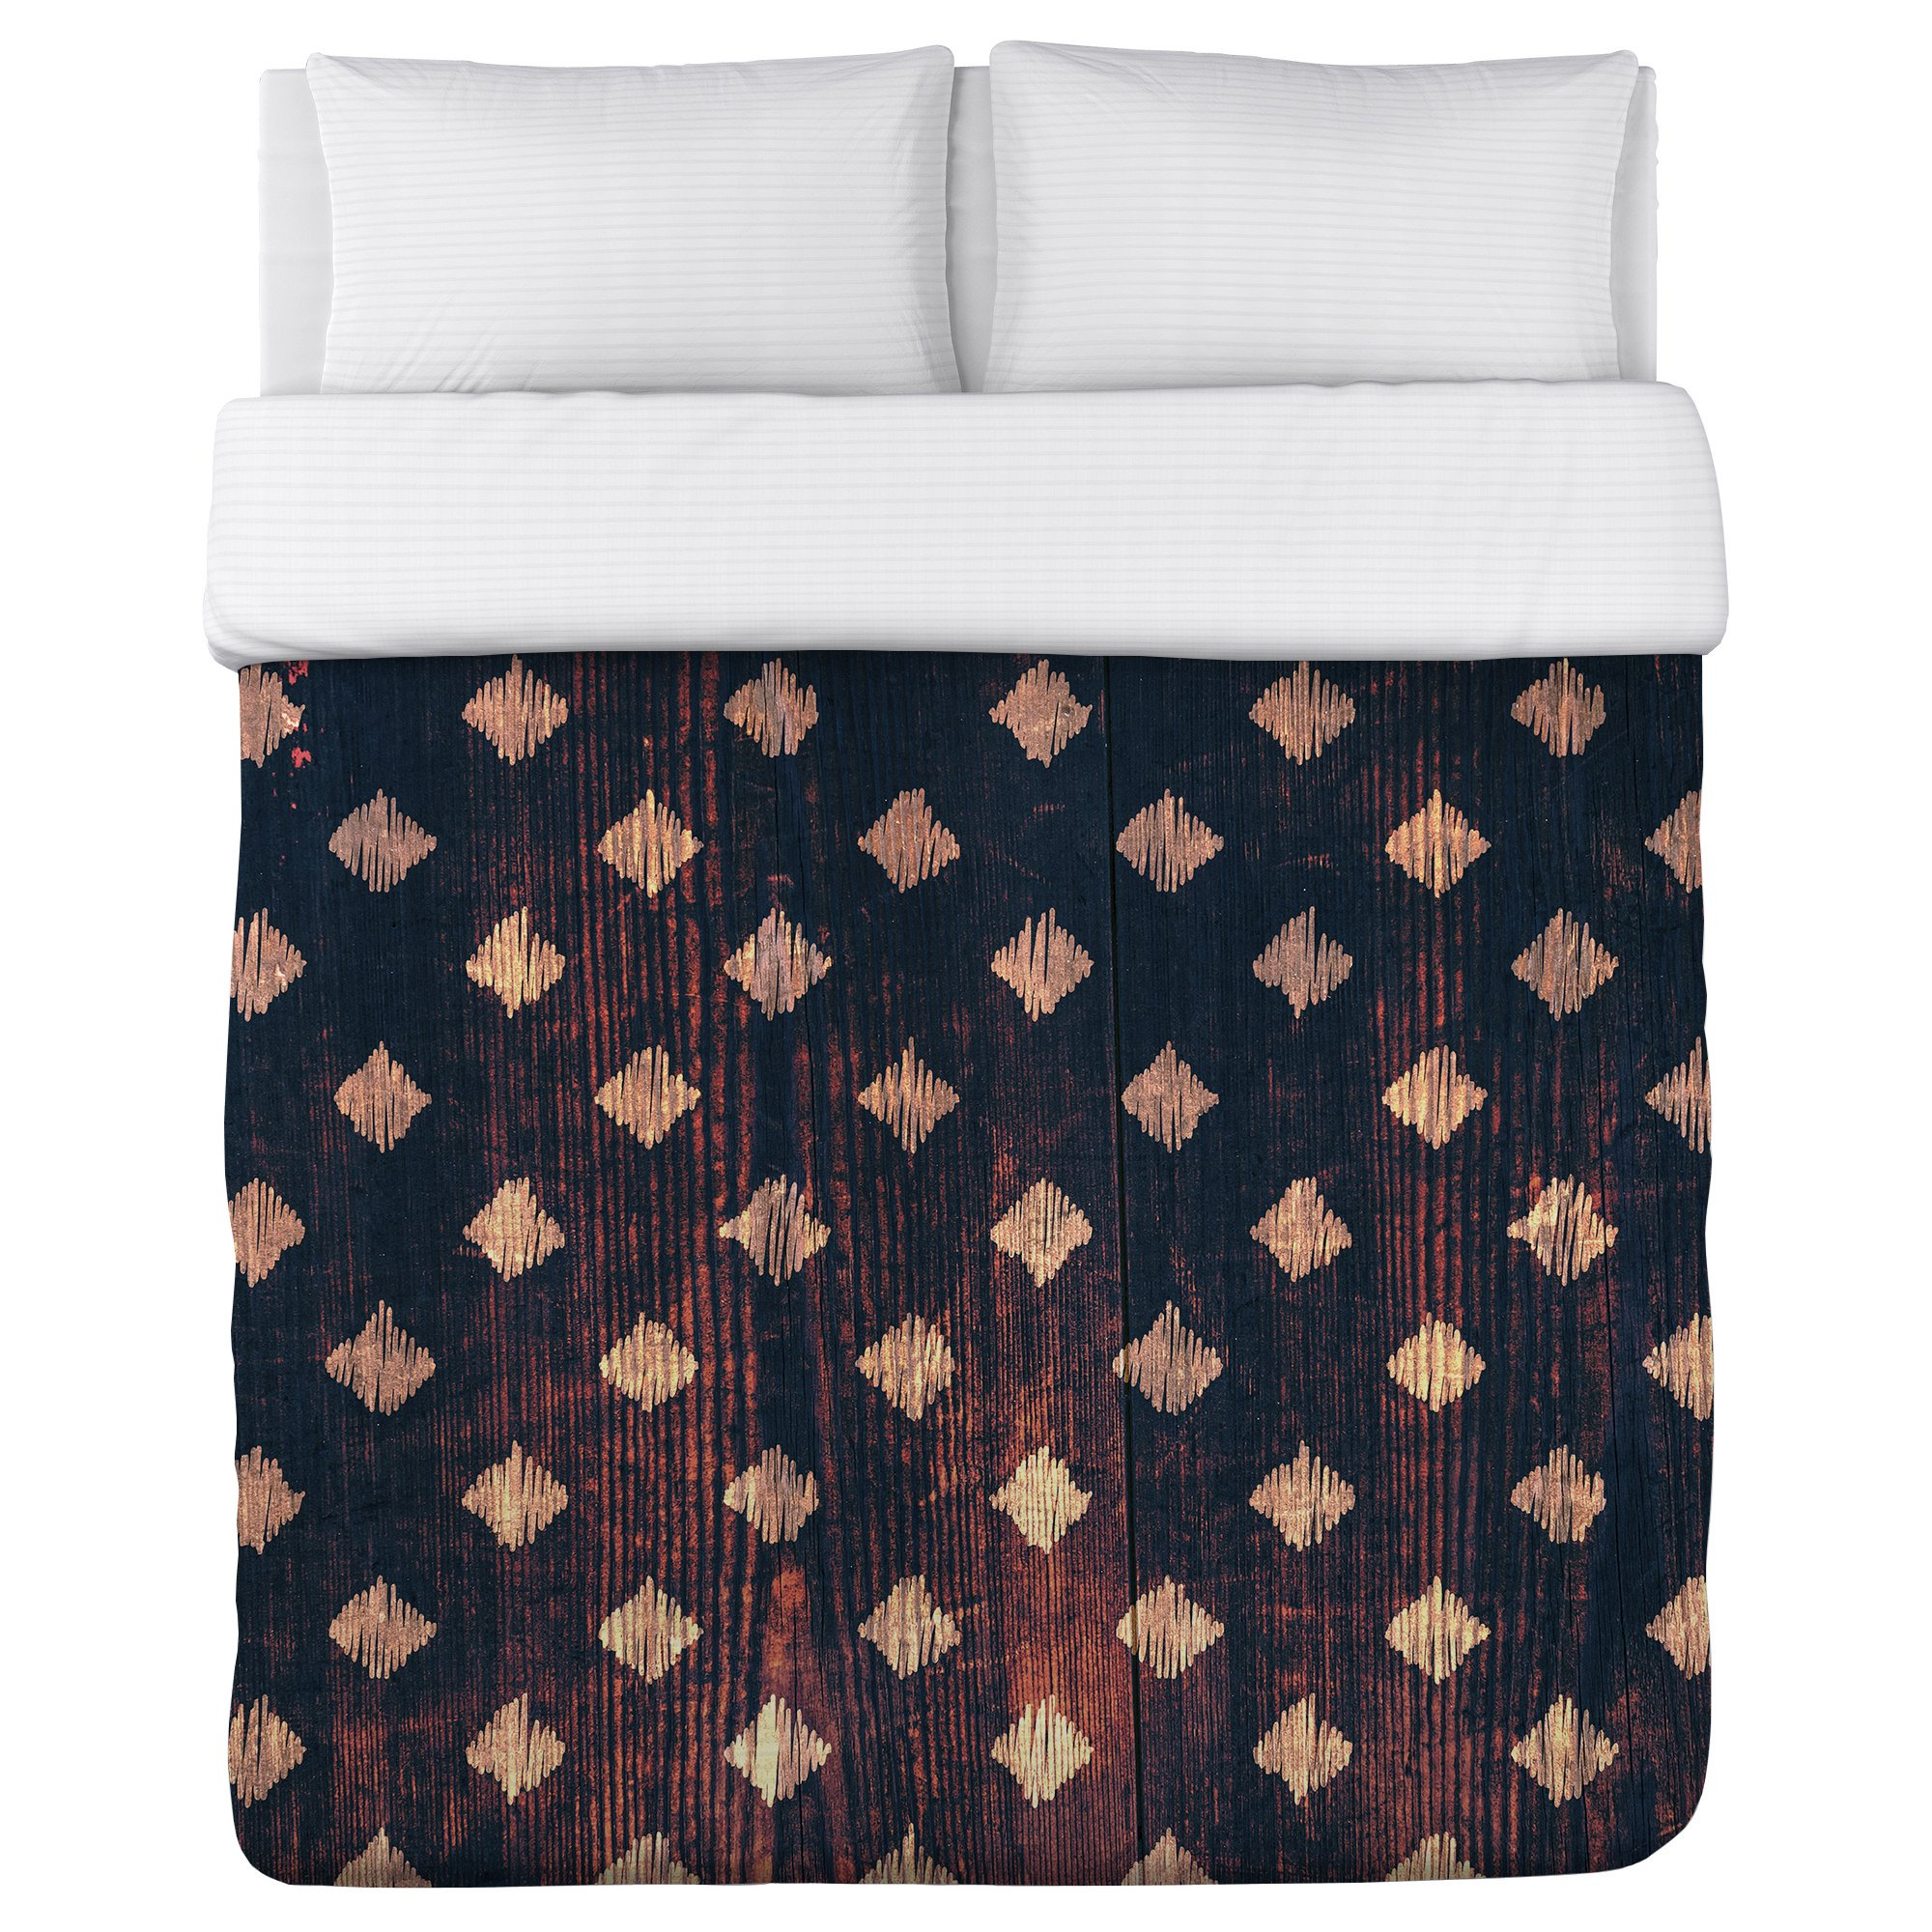 One Bella Casa Scribble Scrabble Wood Duvet Cover by OBC, King, Brown